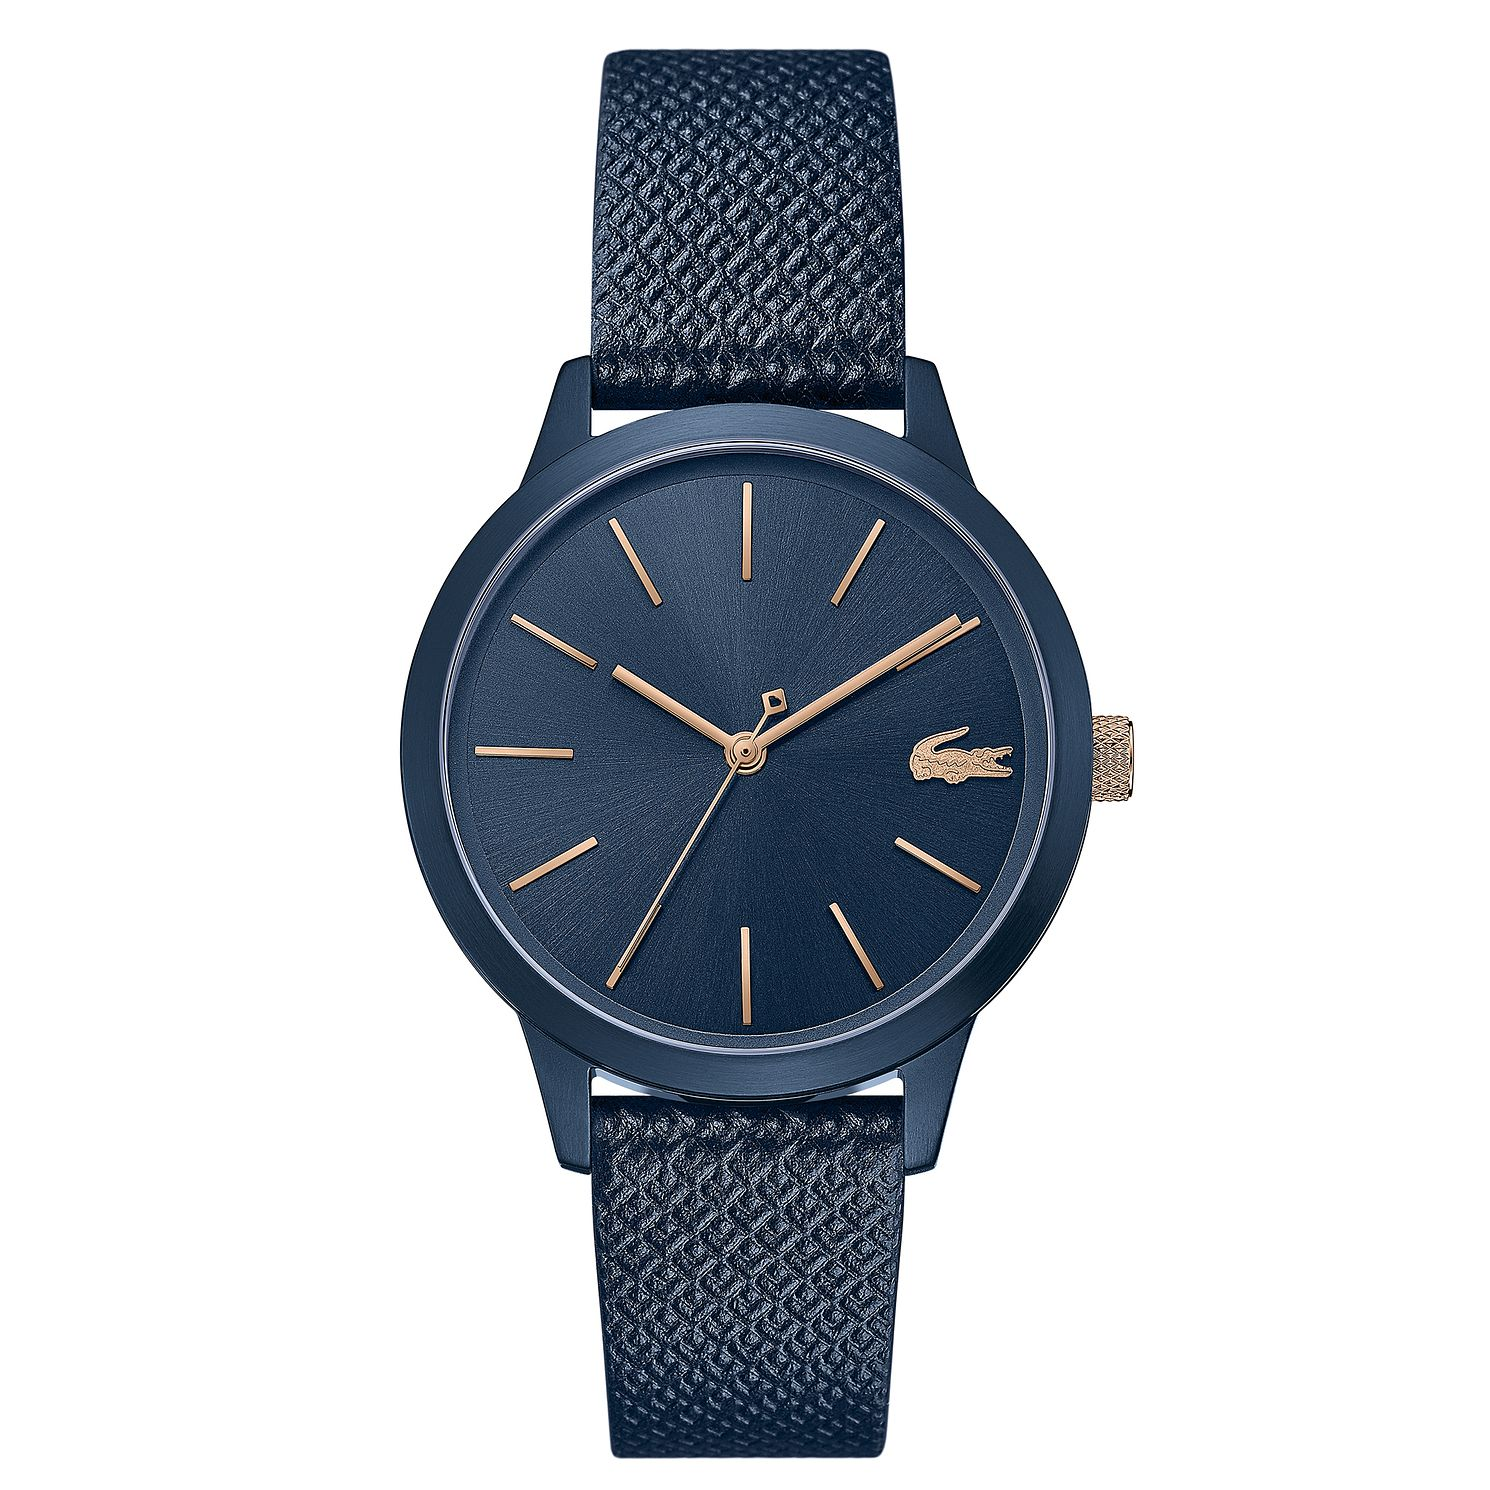 Lacoste 12.12 Ladies' Dark Blue Leather Strap Watch - Product number 5058279